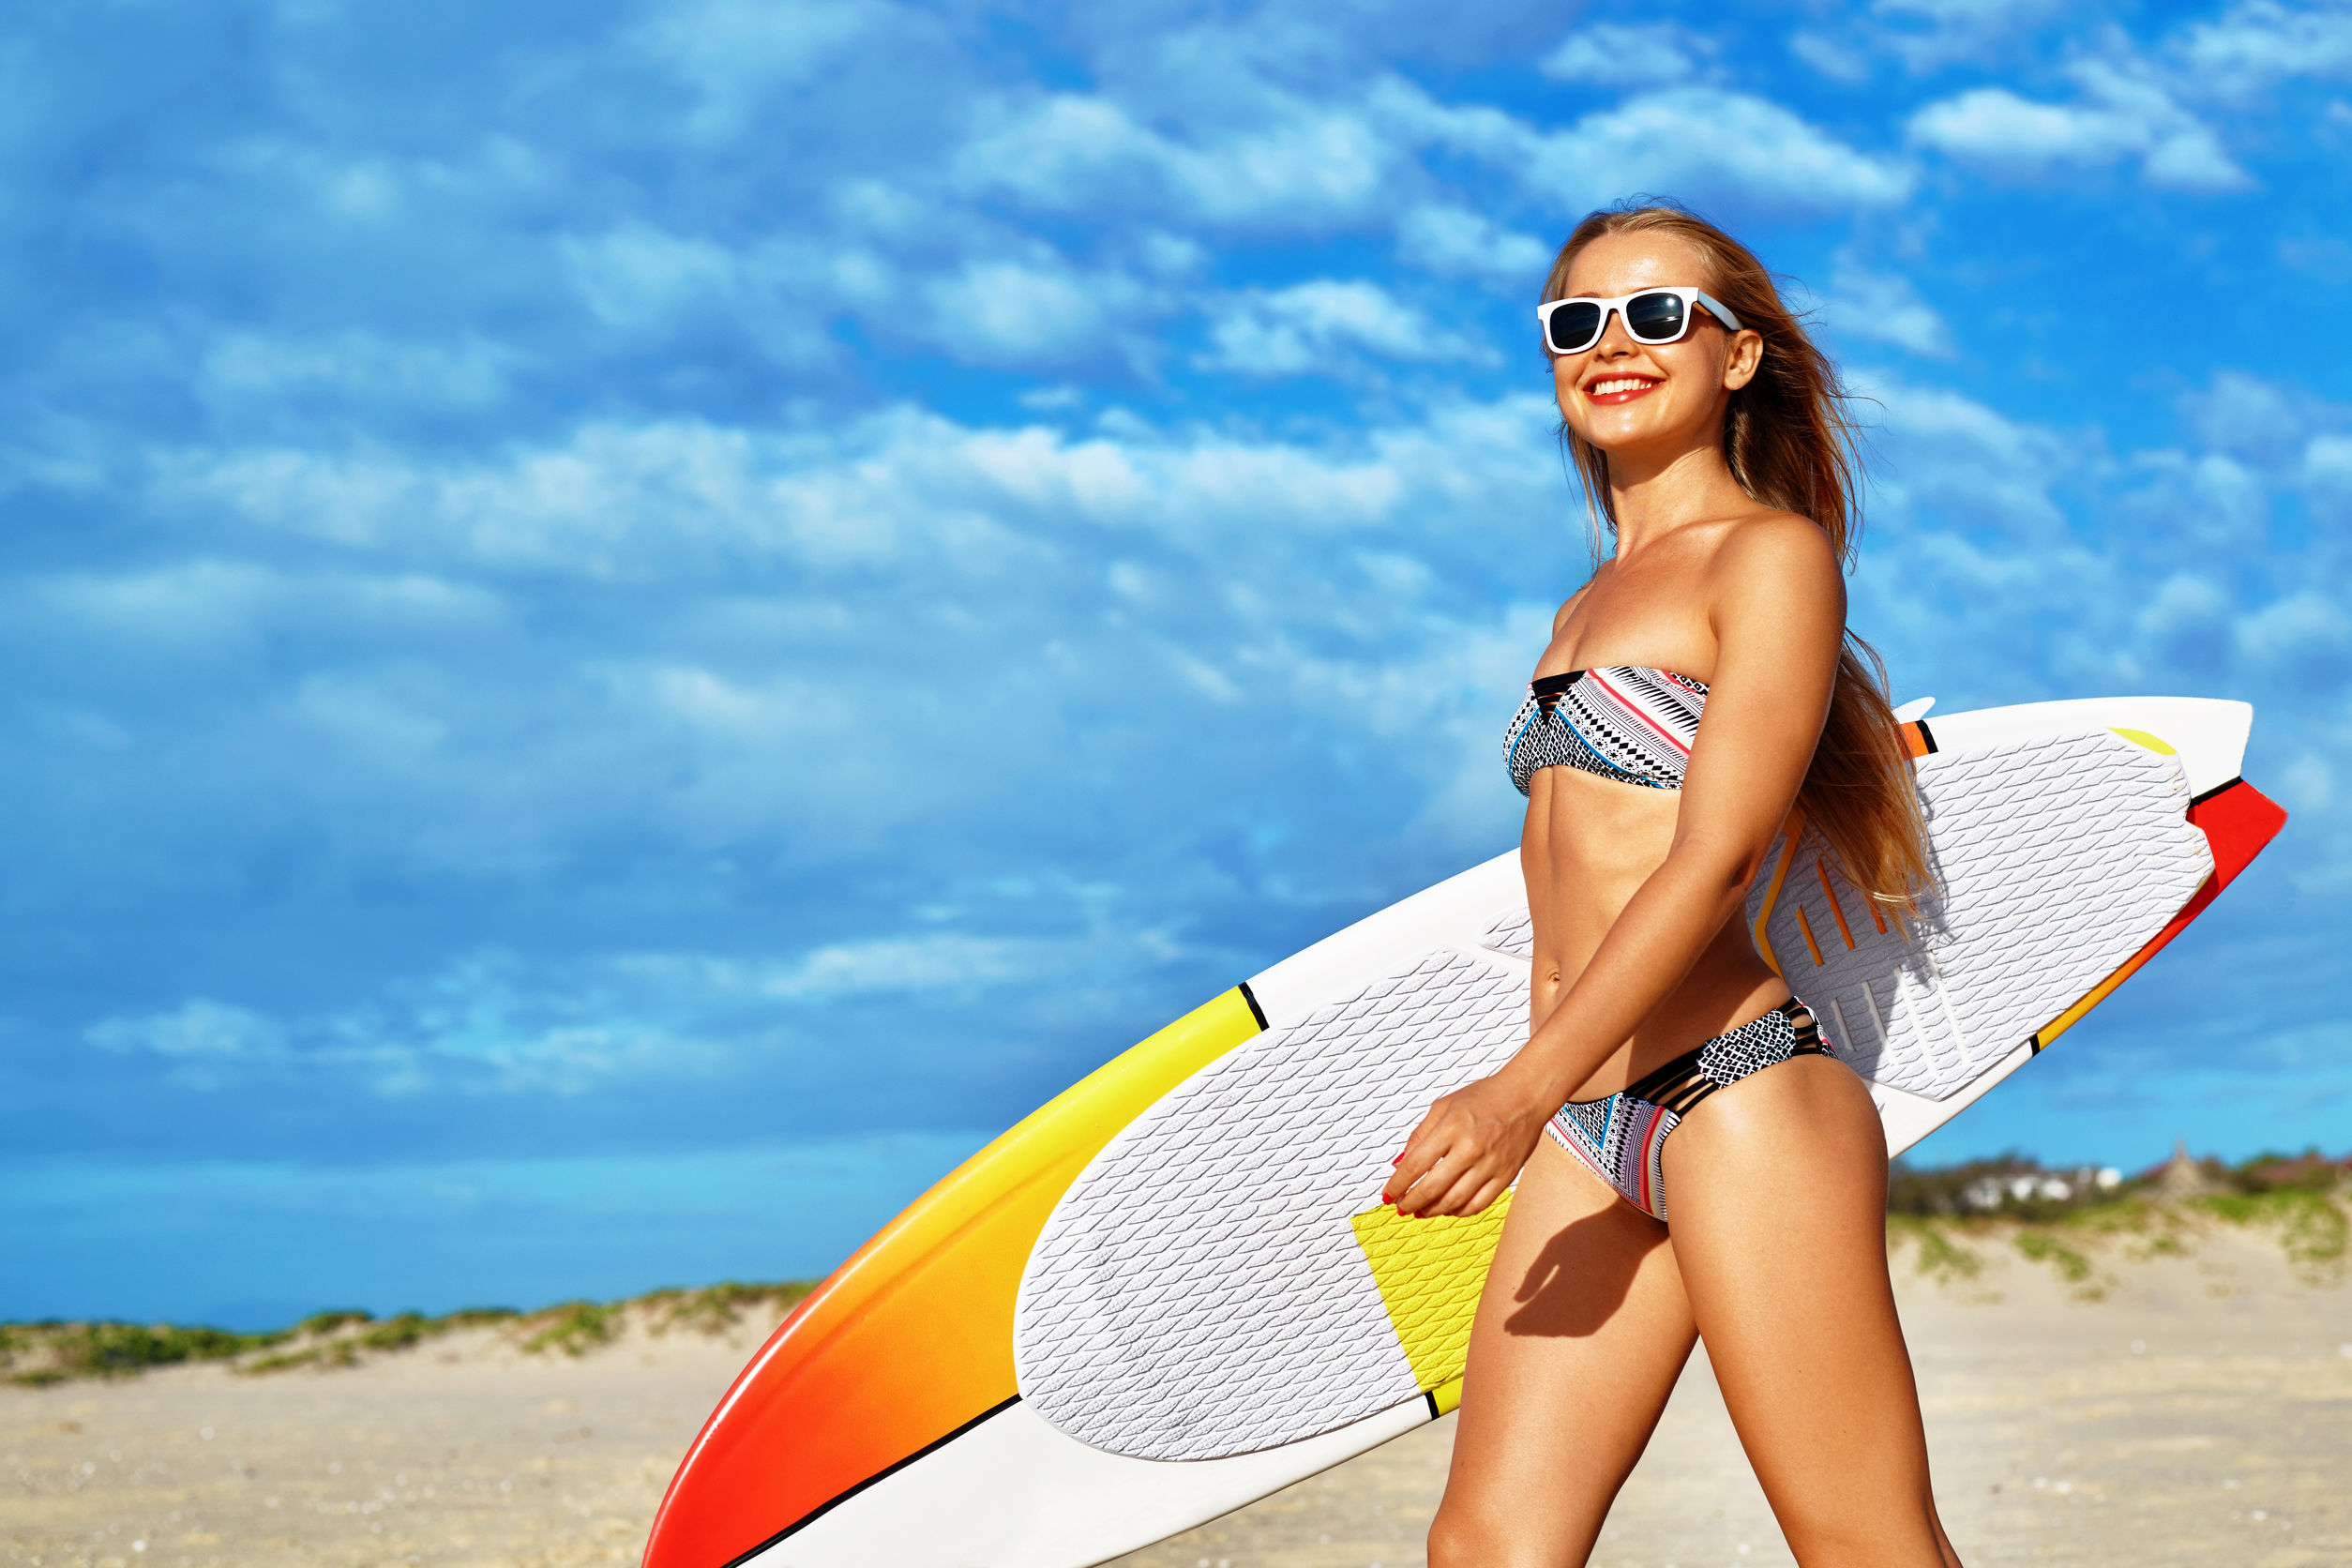 54194693 - healthy active lifestyle. surfing. water sports. beautiful athletic surfer woman with sexy fit body in bikini with surf board walking on sea beach. summer vacation. extreme sport. summertime fun hobby